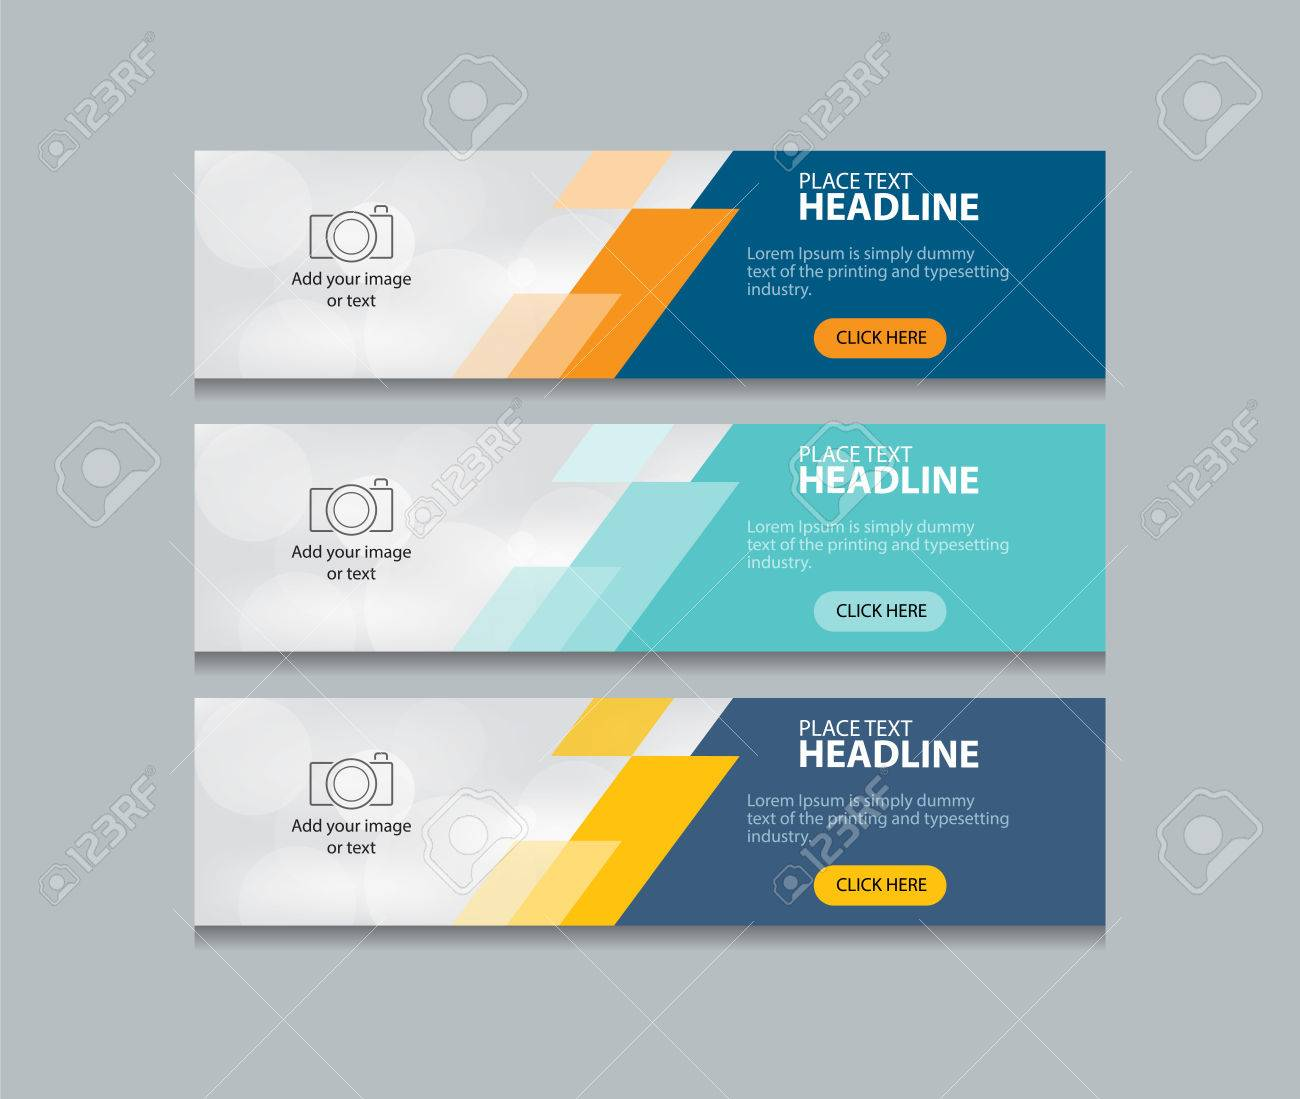 Abstract Web Banner Design Template Background Royalty Free Cliparts Vectors And Stock Illustration Image 60917046